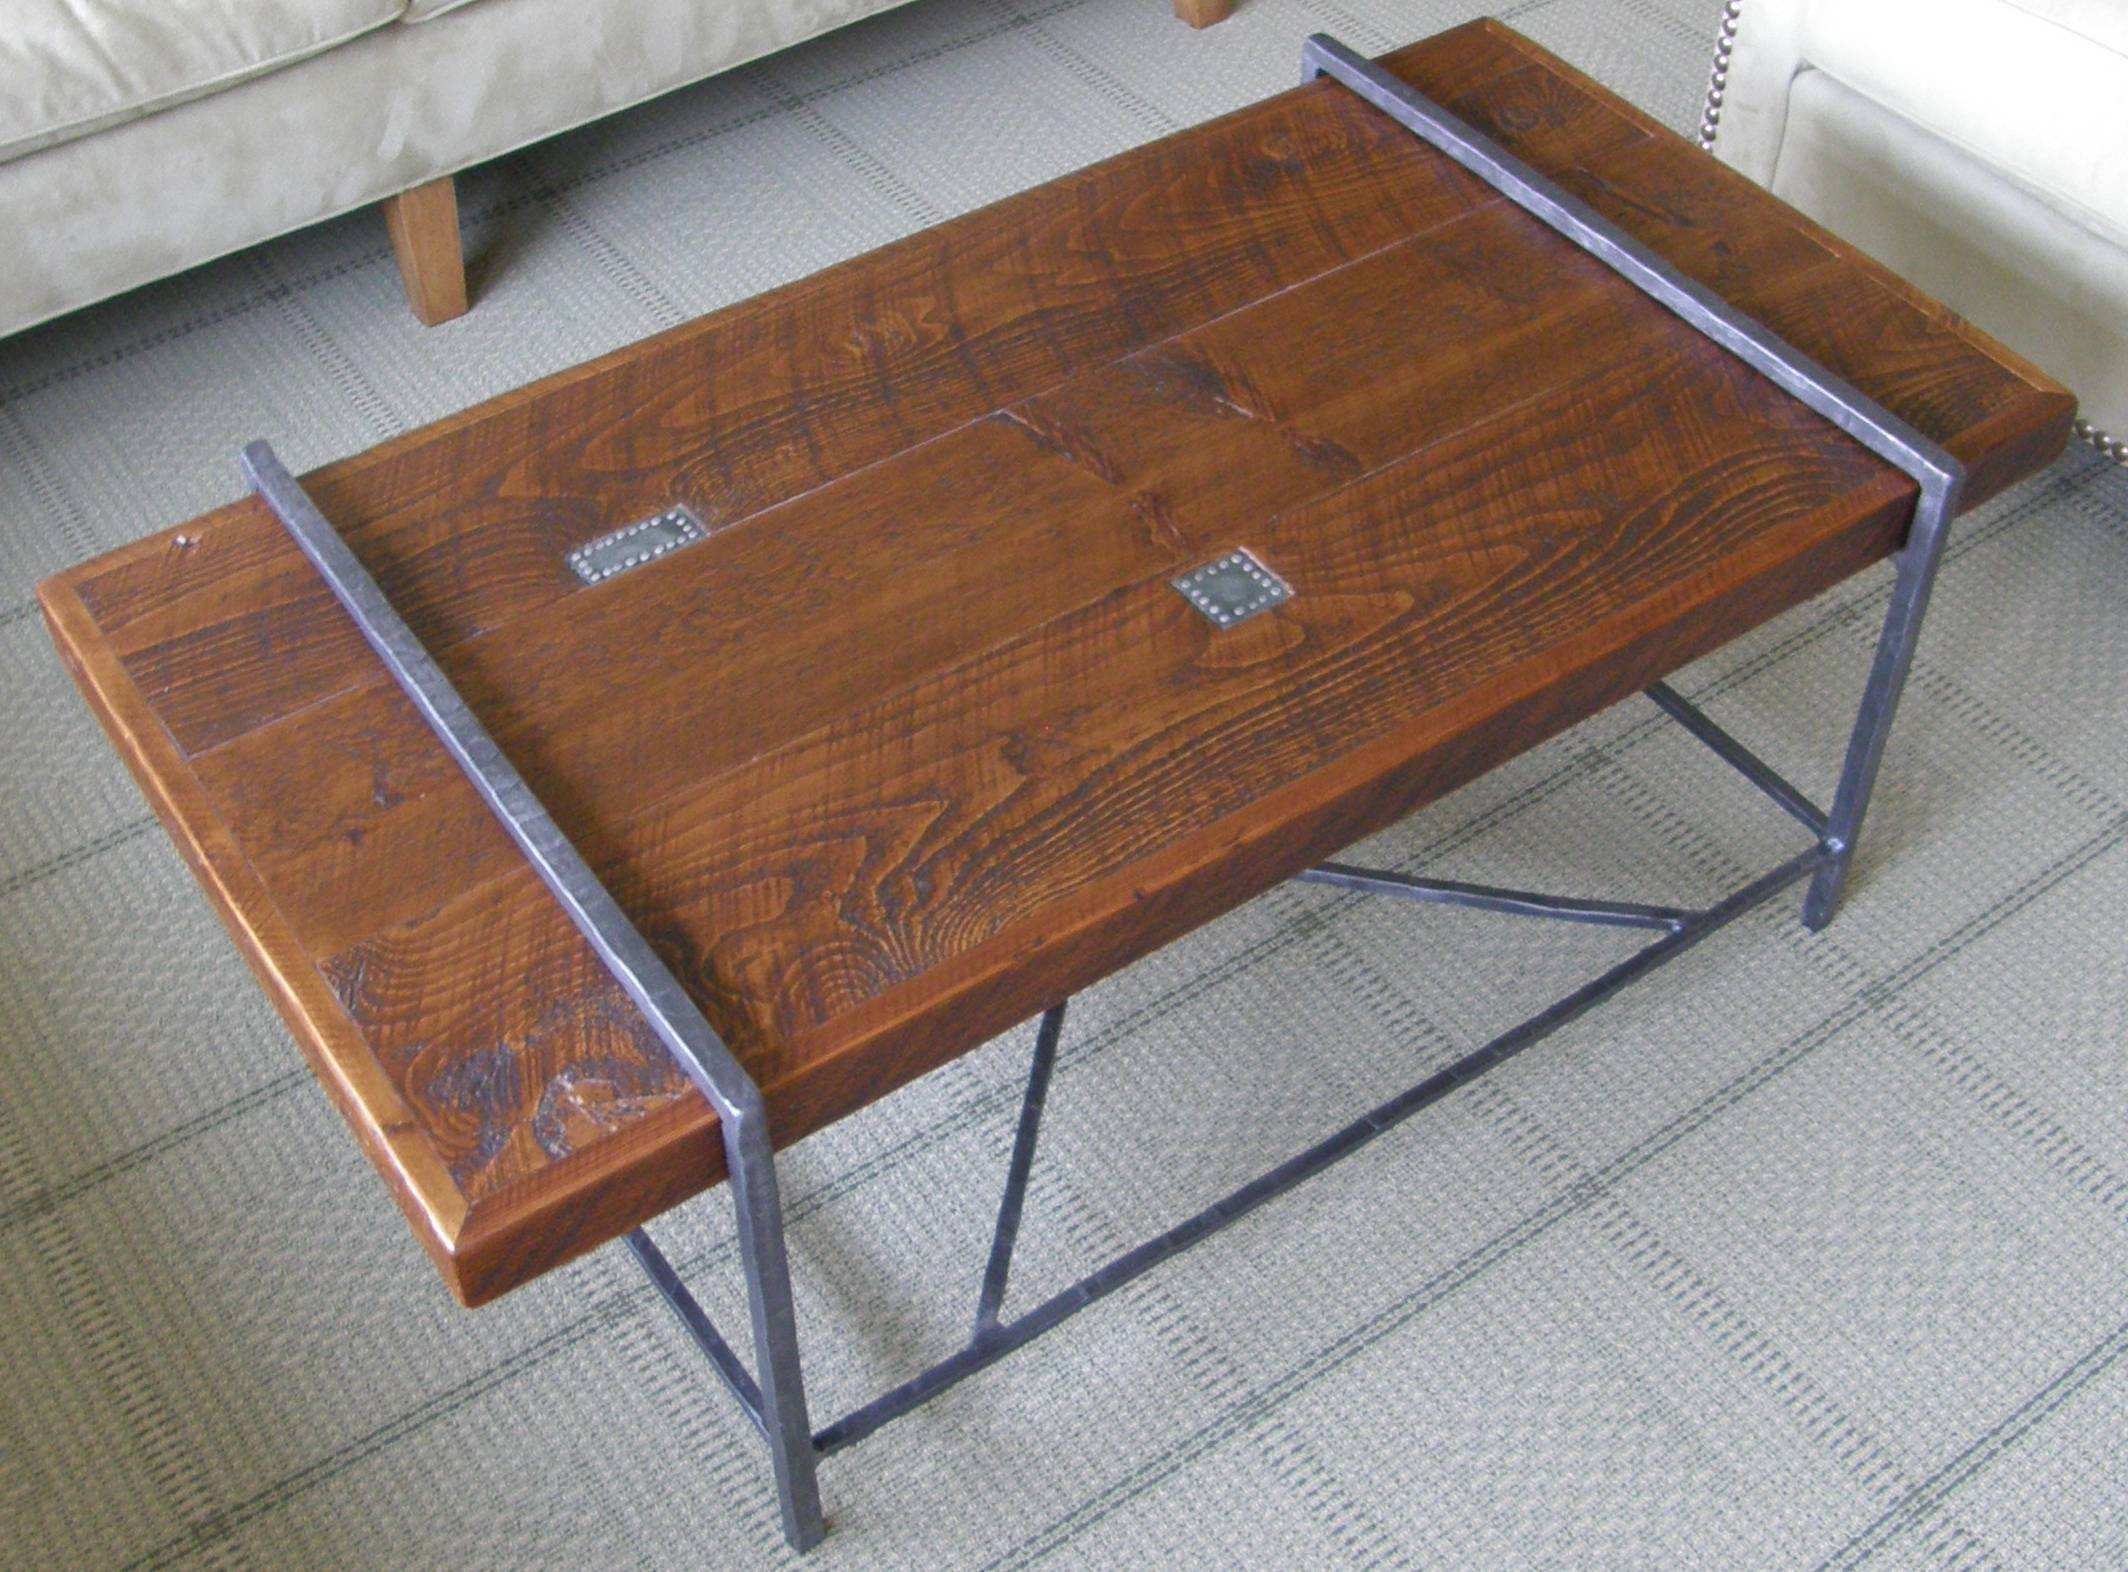 Reclaimed Wood Coffee Table Top With Metal Base - Youtube intended for Metal and Wood Coffee Tables (Image 13 of 15)